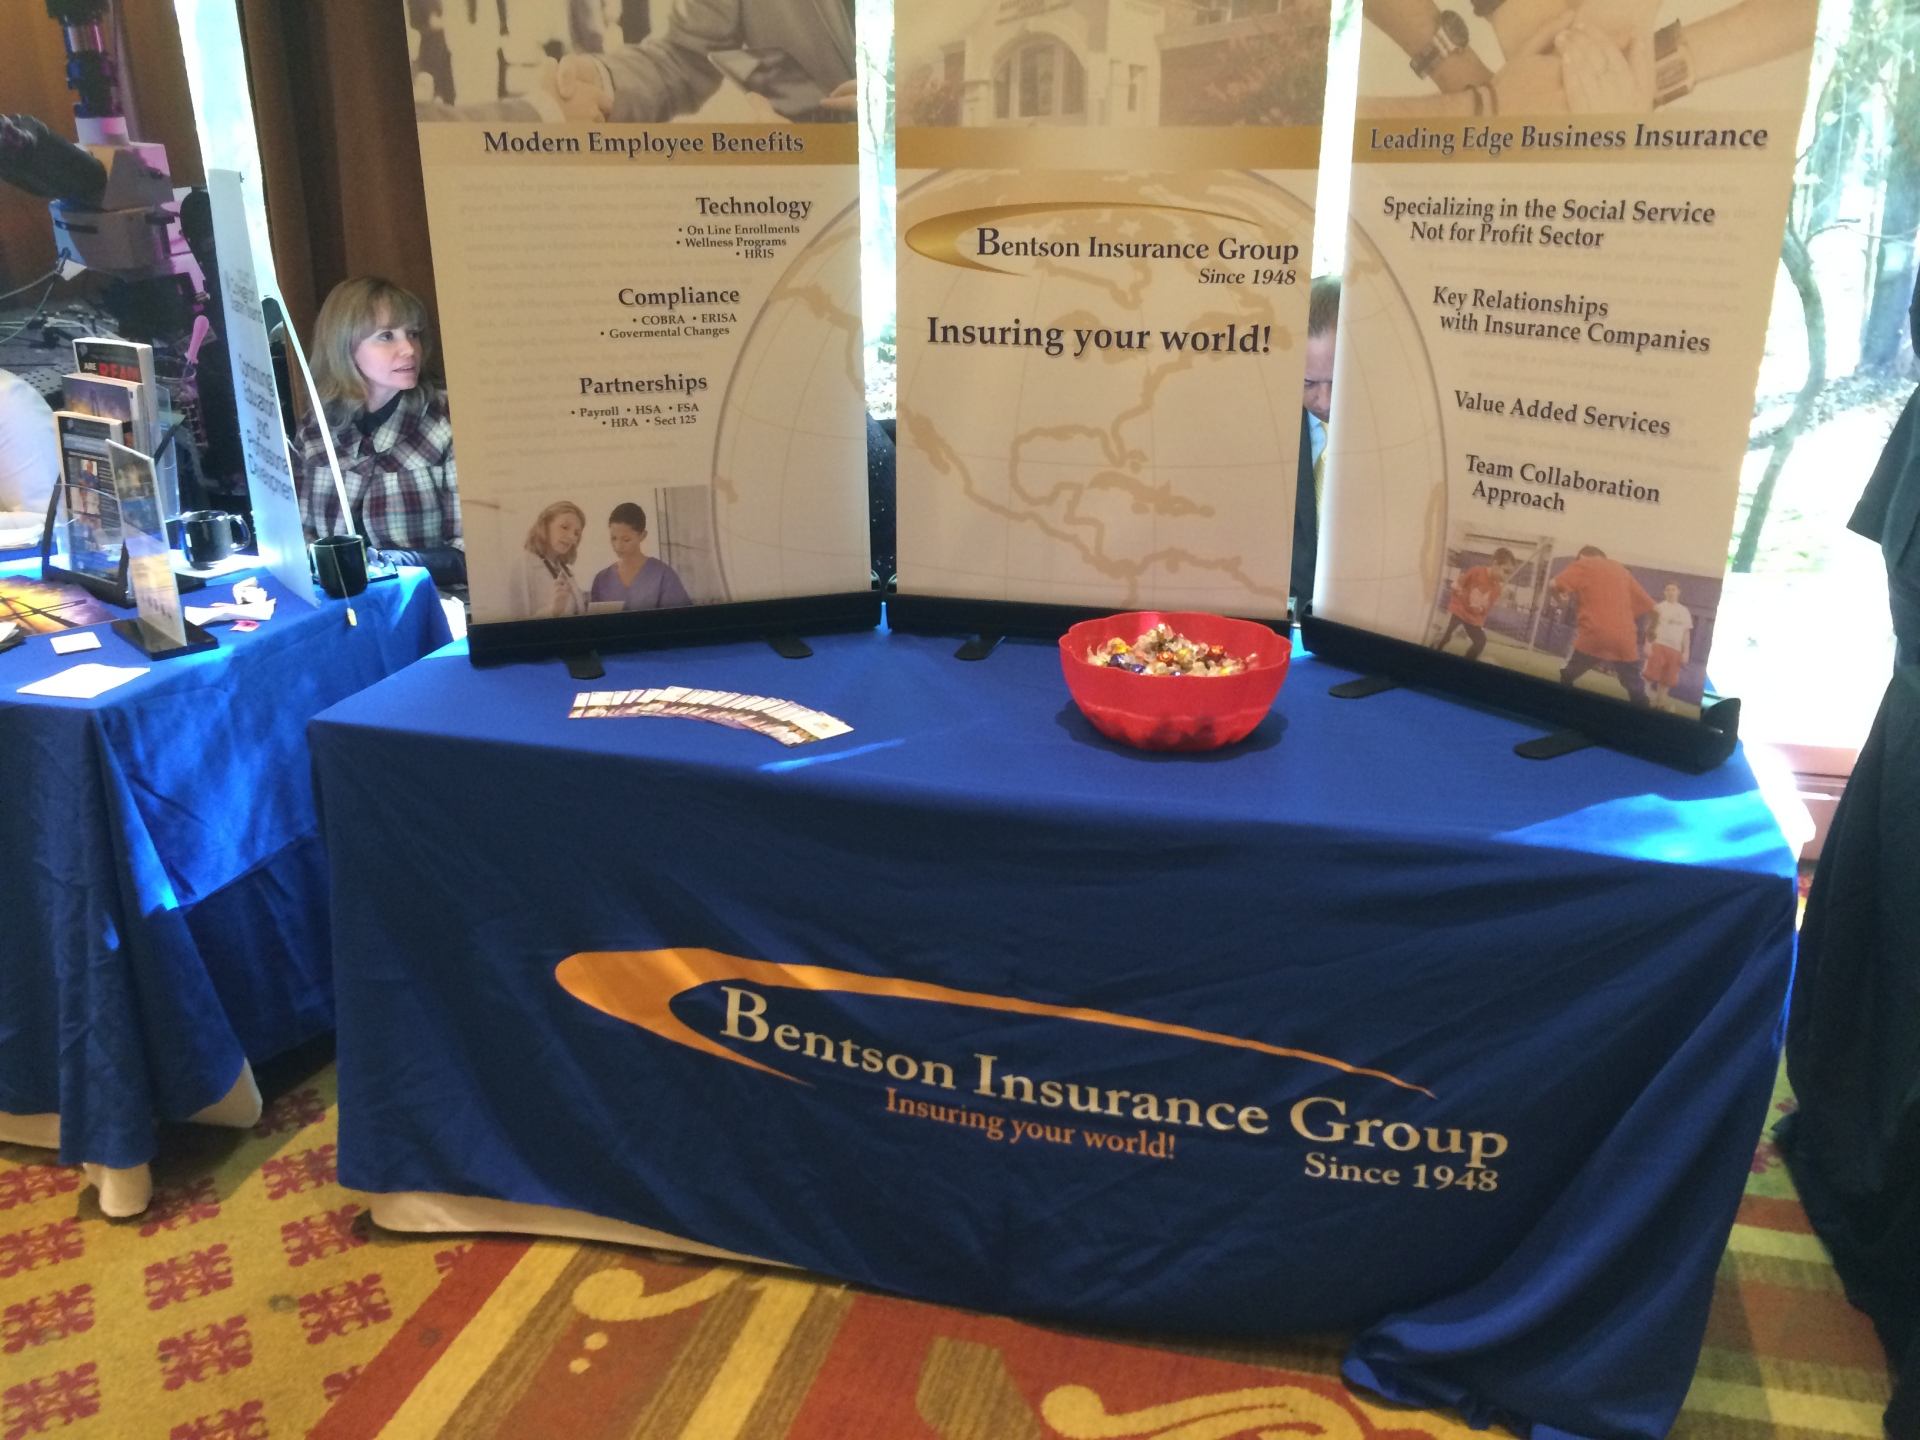 Vendors Row: Bentson Insurance Group